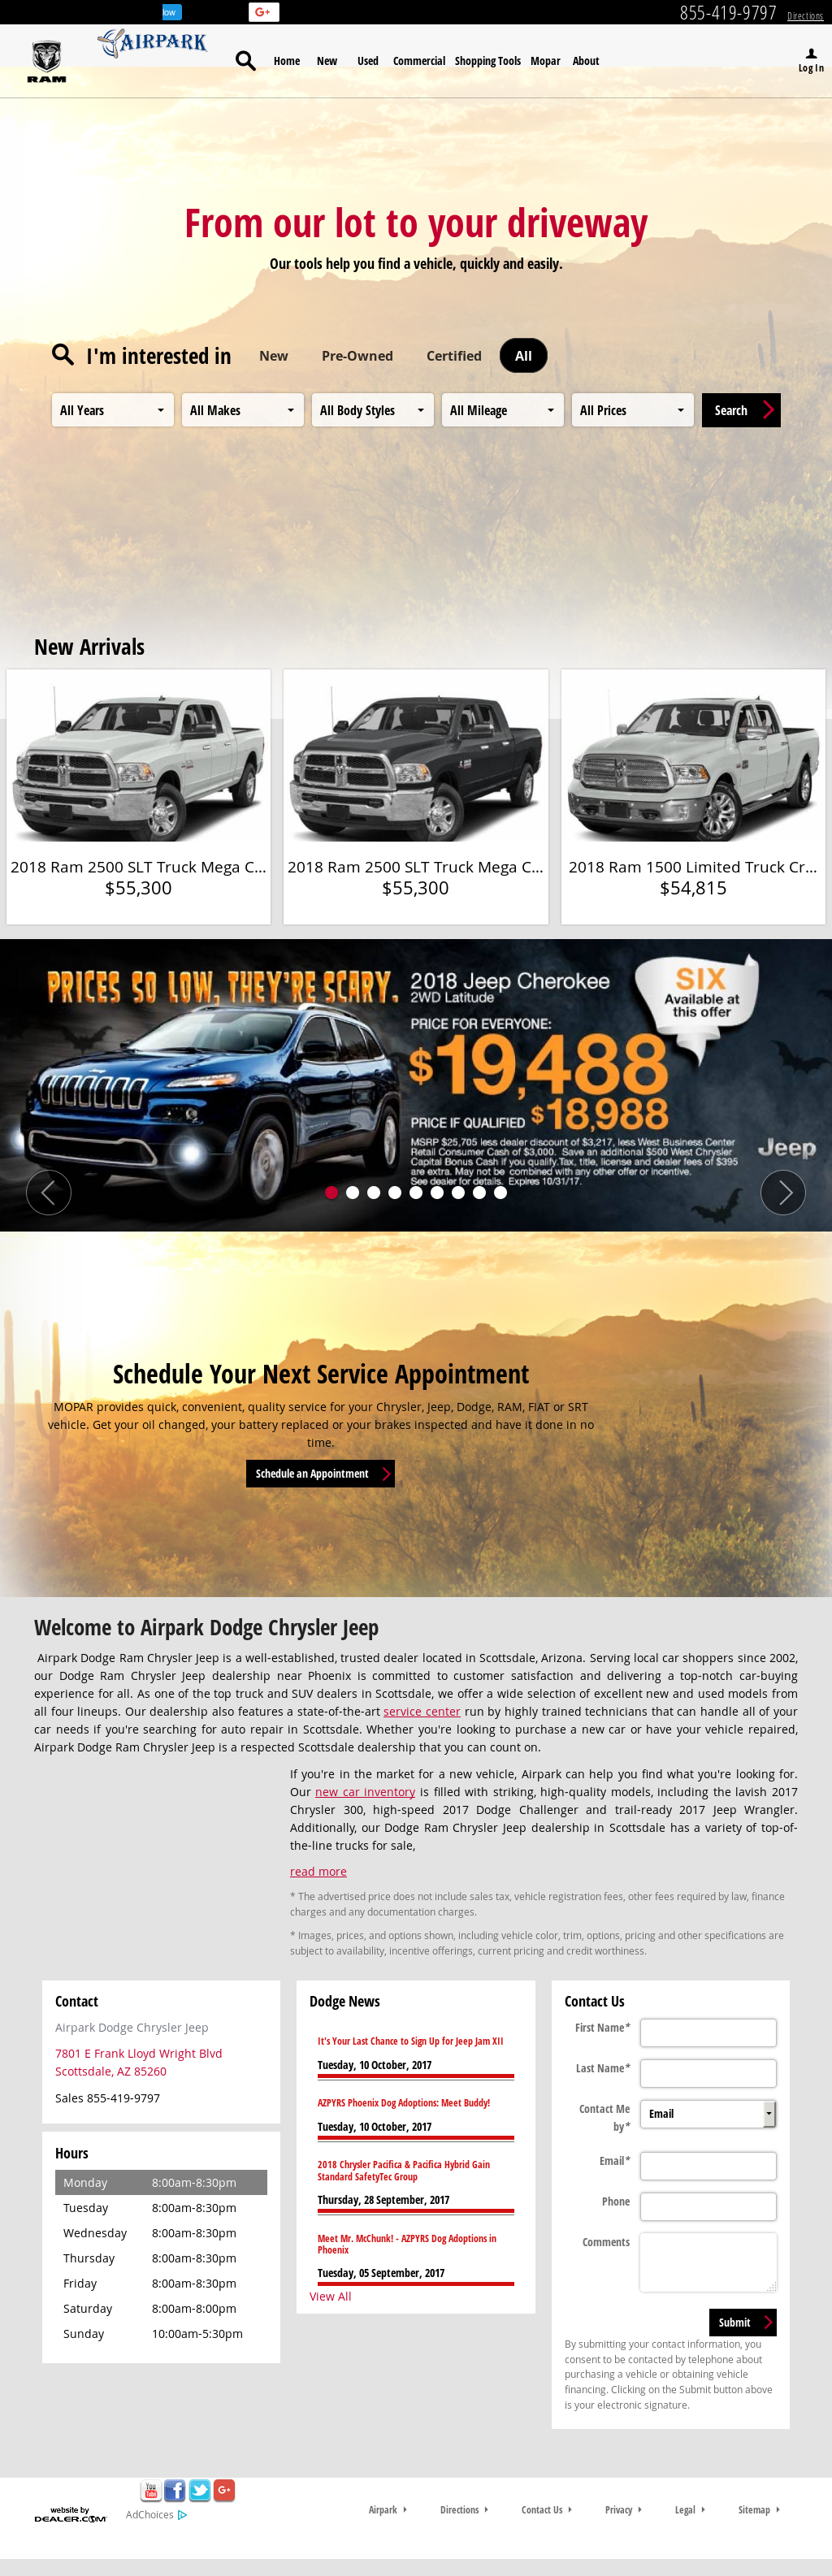 Airpark Chrysler Dodge Jeep petitors Revenue and Employees